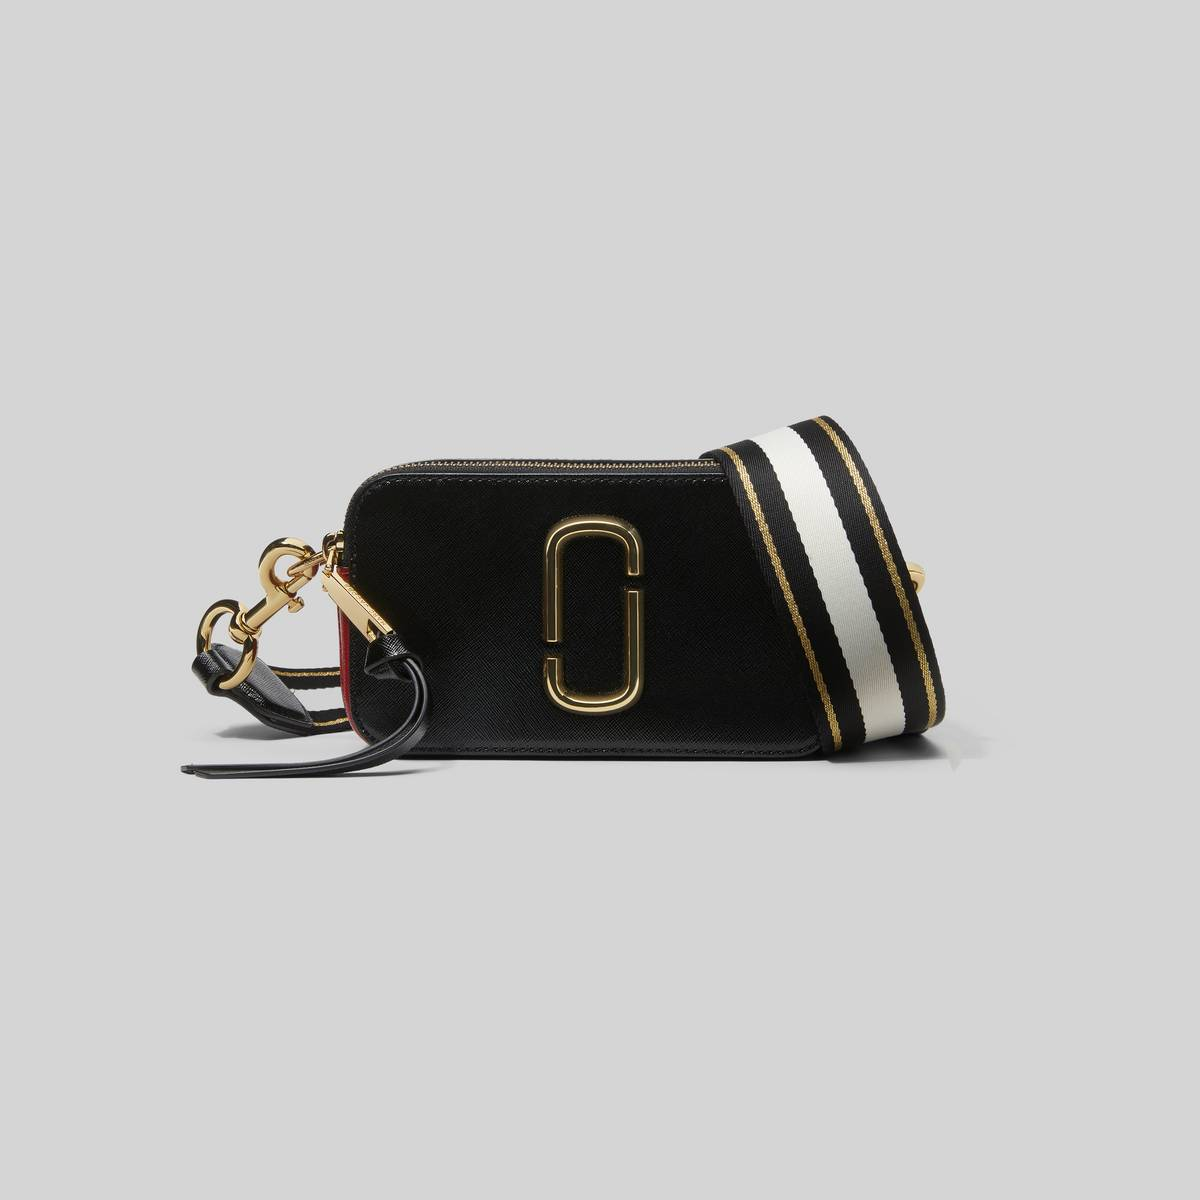 Bold and compact, our best-selling Snapshot Small Camera Bag keeps all the important stuff organized without missing a beat. Take this from your daily commutes to your next vacayitll perk up your look wherever you end up. | MARC JACOBS Women\\'s The Snapshot Bag in Black/Red